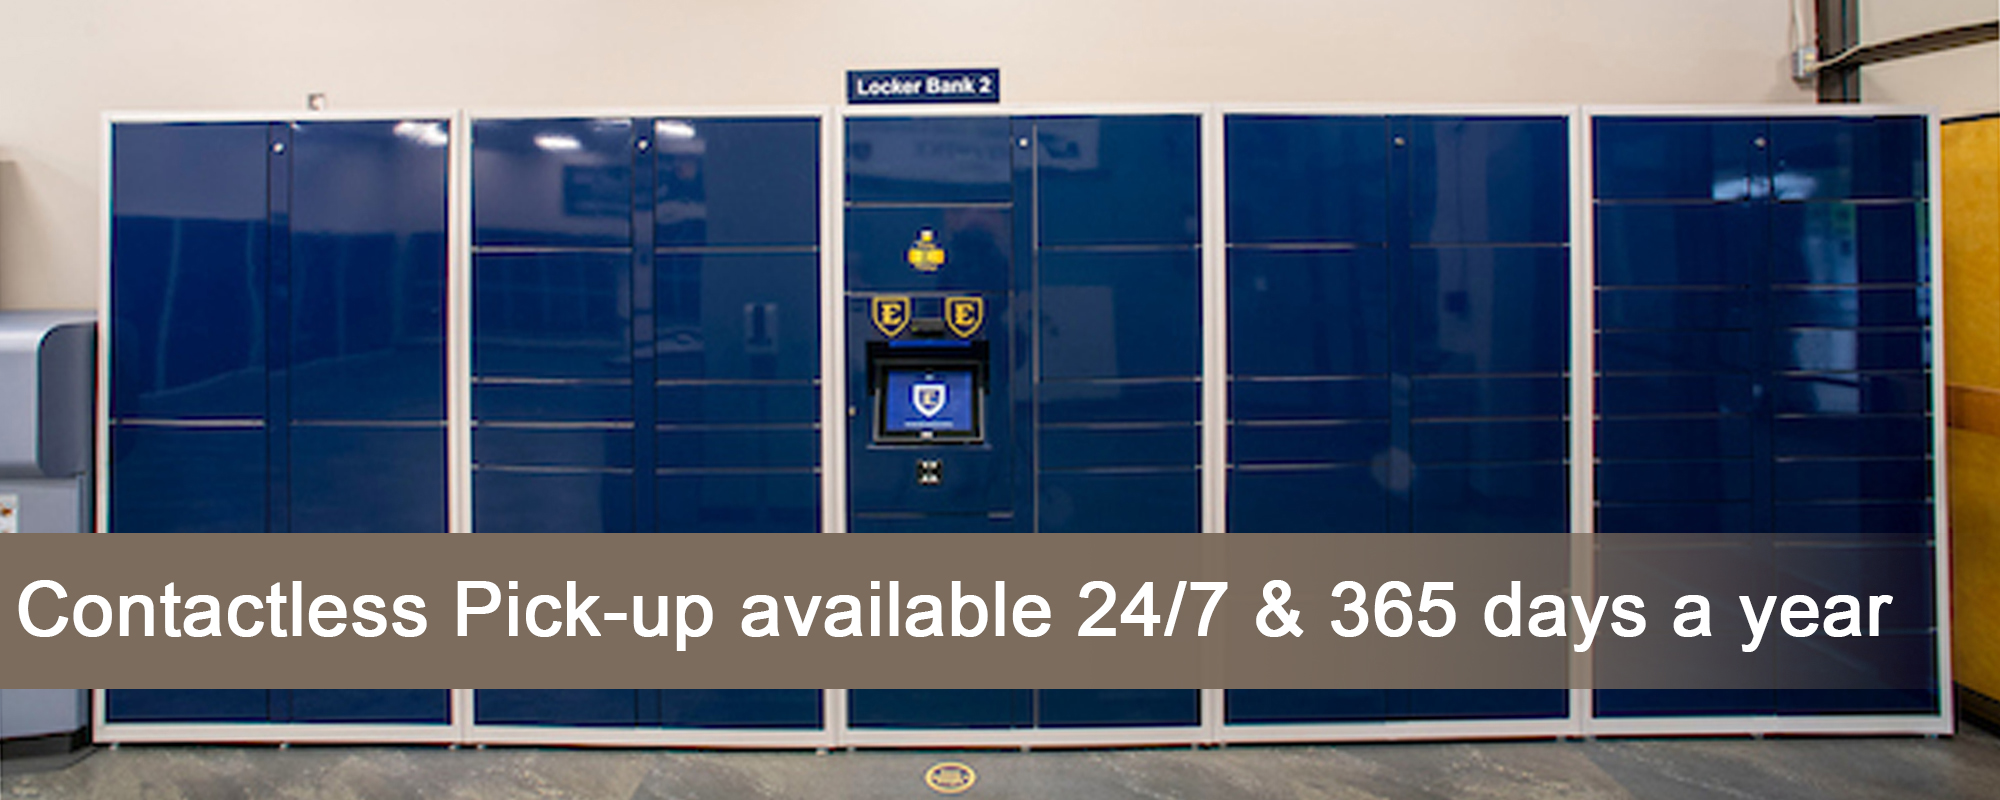 Contactless Pick-up available 24 7 and 365 days a year